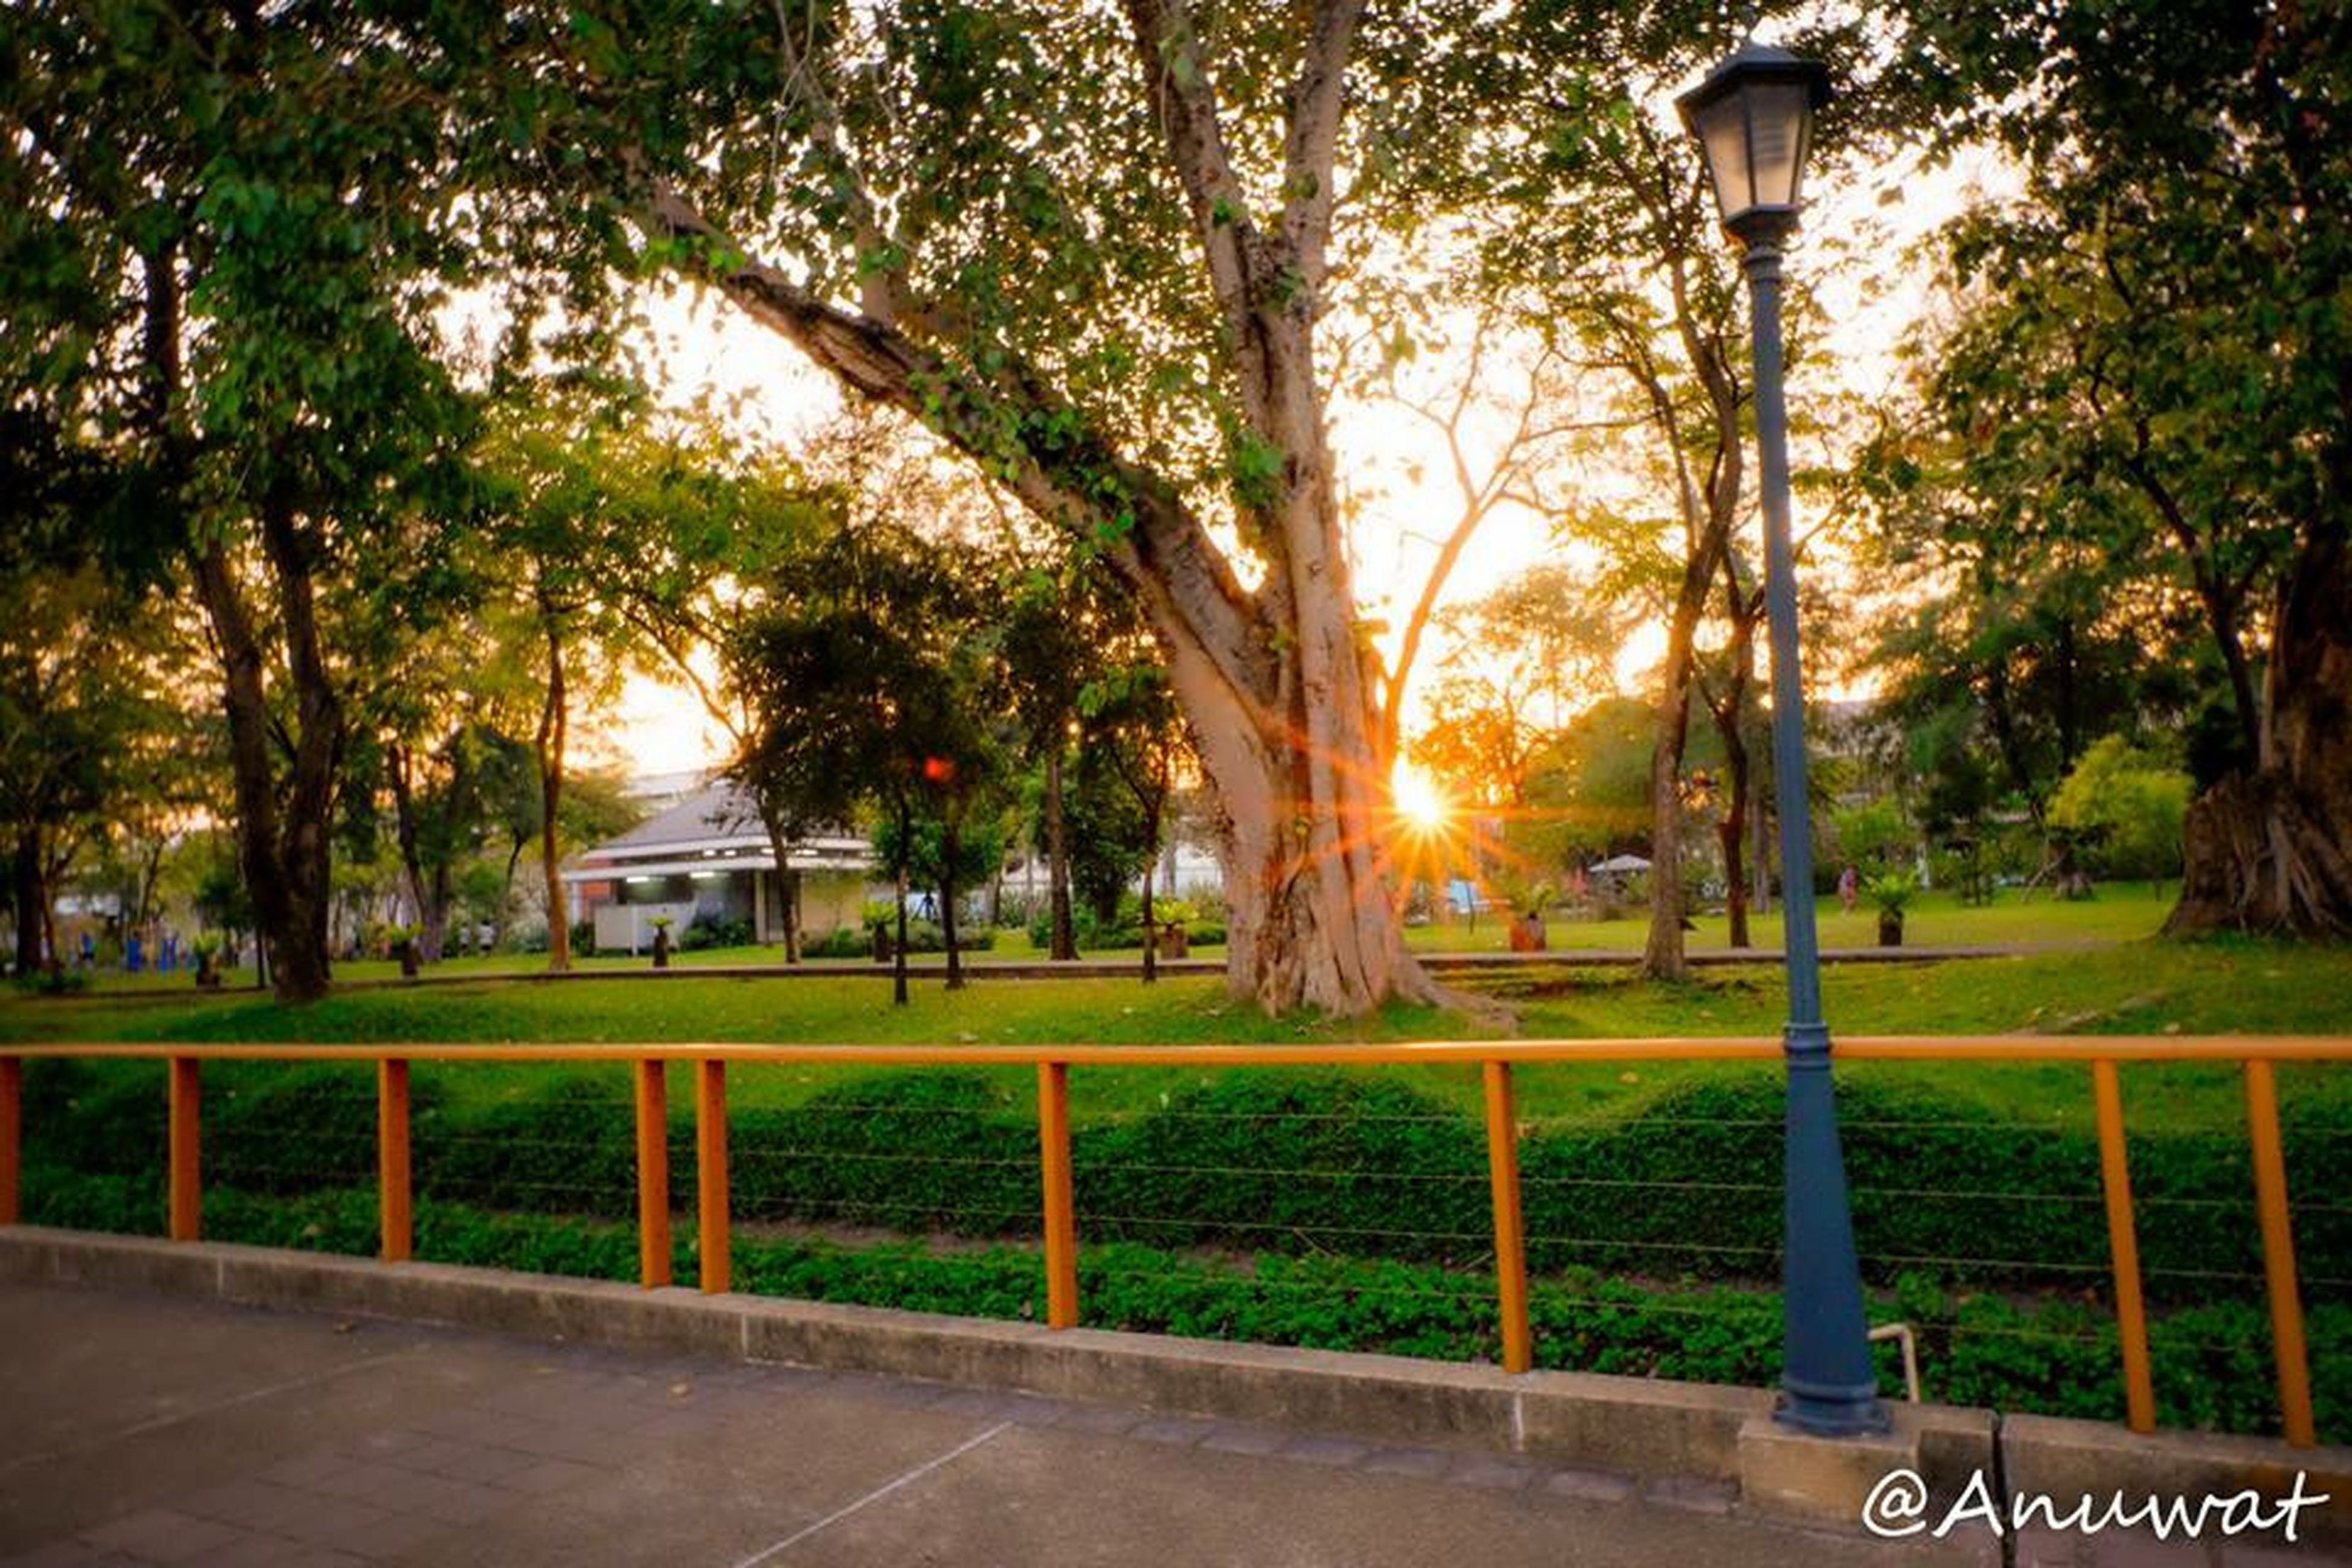 tree, grass, park - man made space, sun, sunlight, growth, tranquility, fence, nature, sunset, beauty in nature, lawn, tranquil scene, branch, field, street light, park, sunbeam, scenics, tree trunk